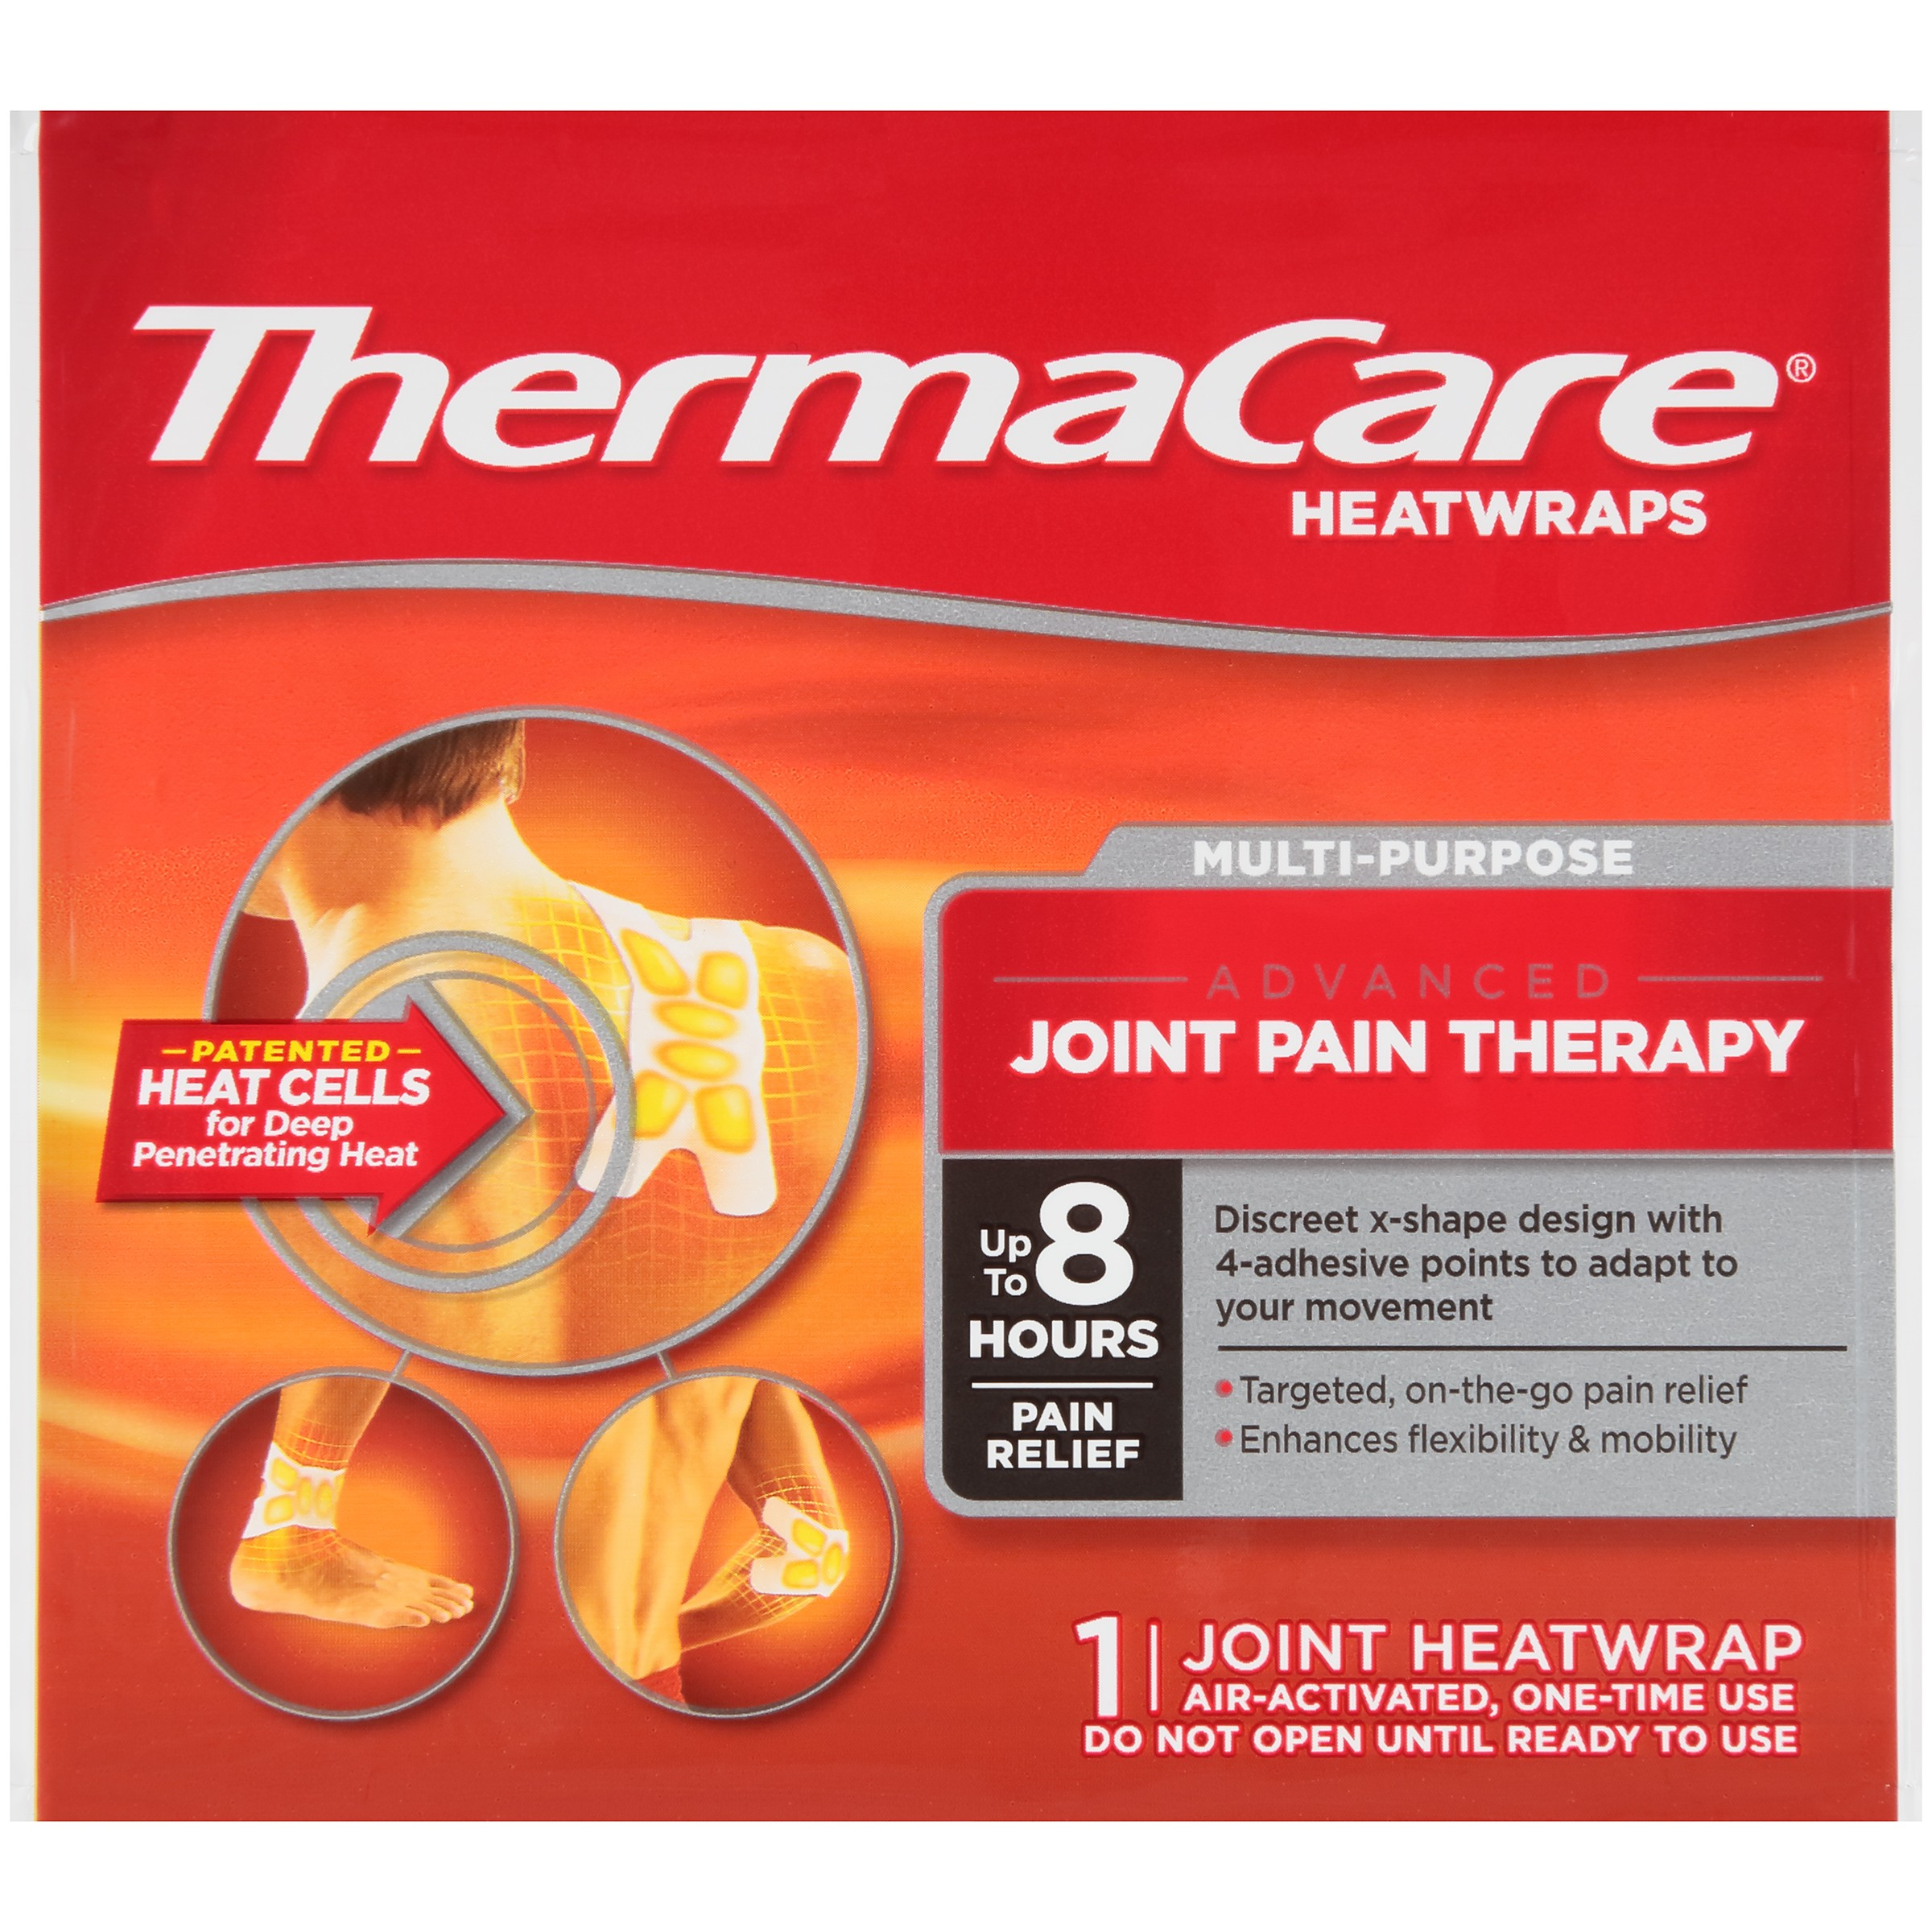 ThermaCare Heatwraps Joint Heatwraps, 4 ct